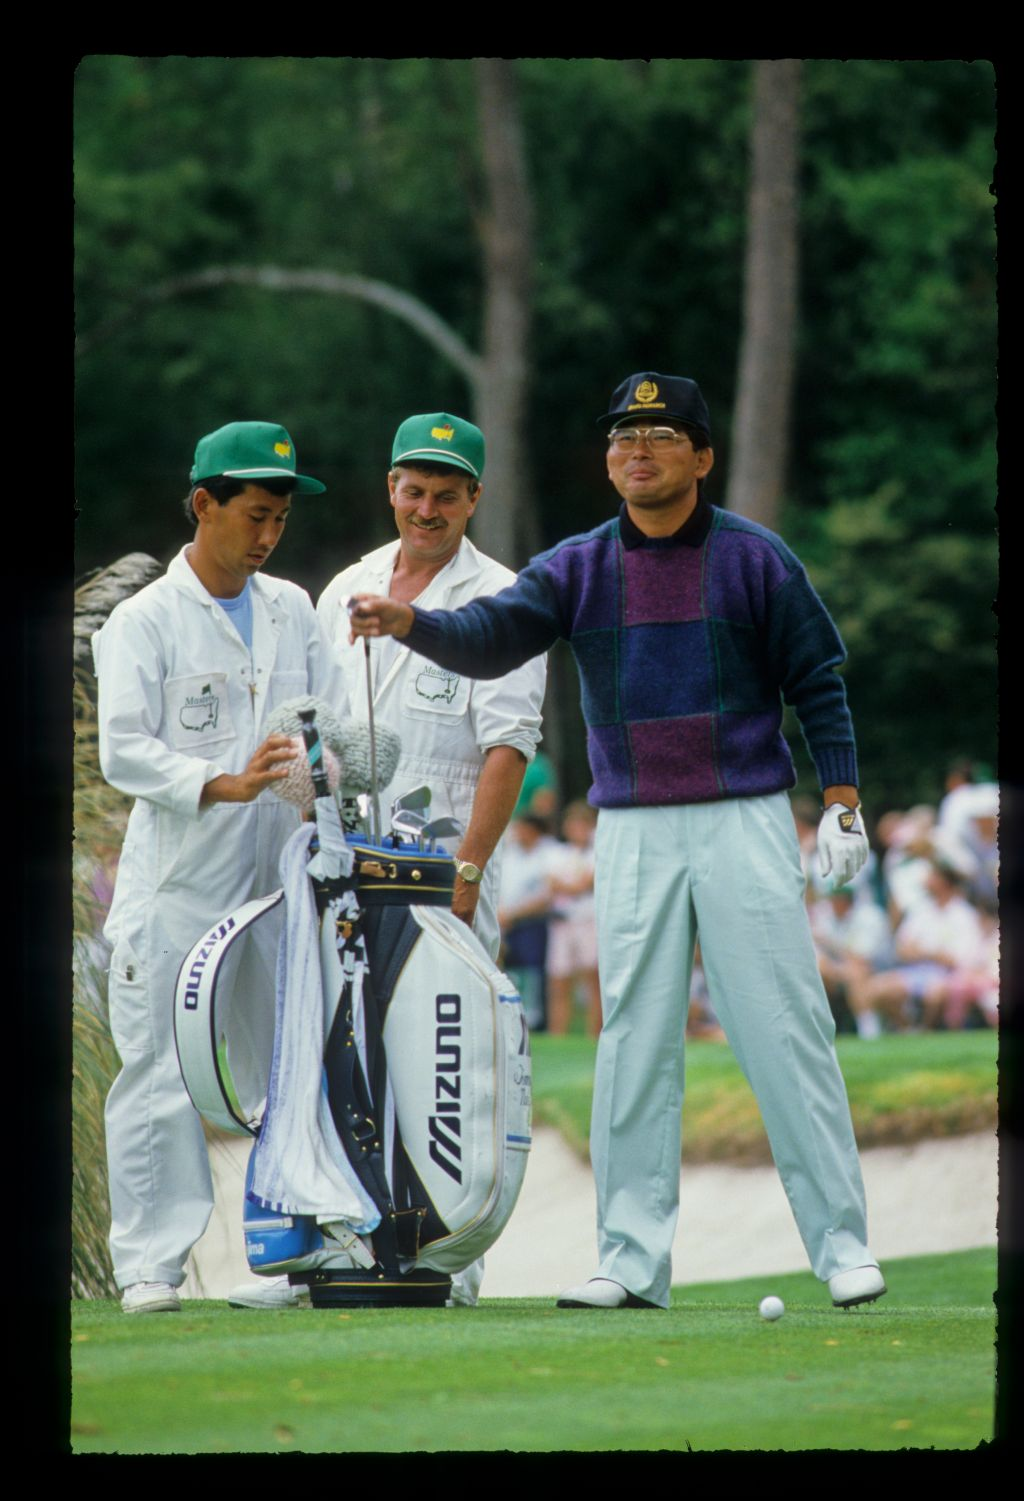 Tommy Nakajima smiling on the tee during the 1988 Masters